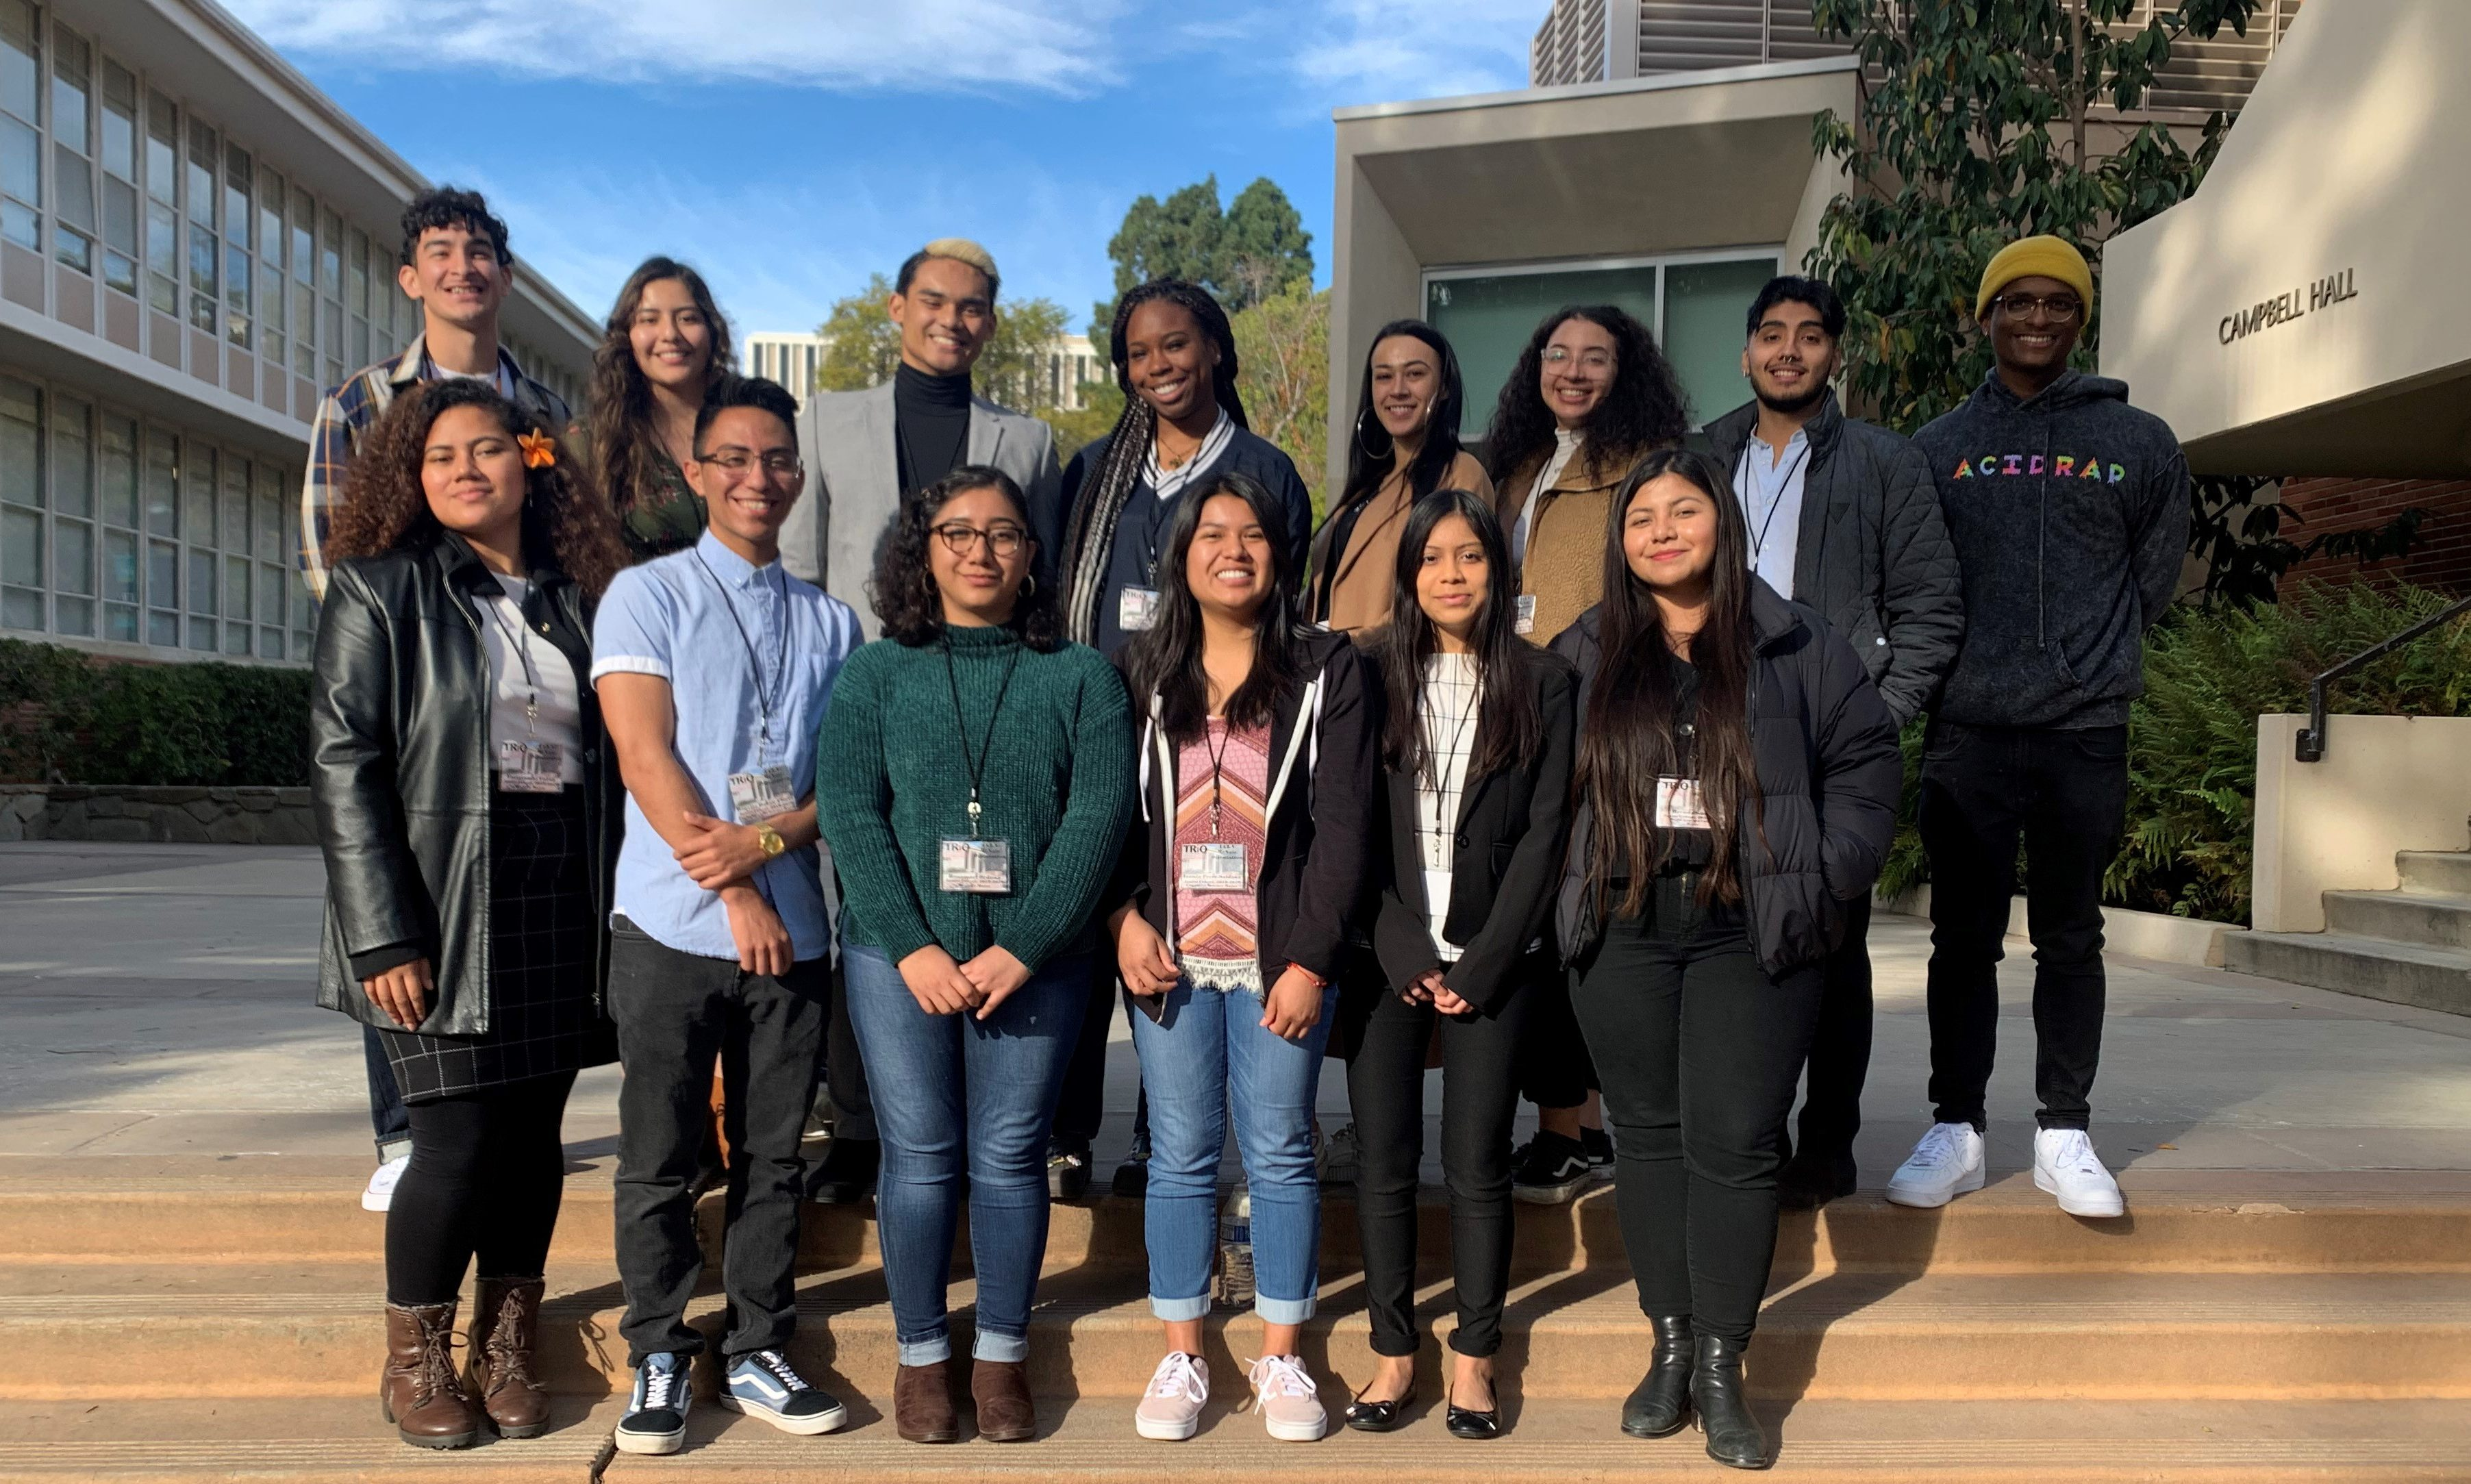 An image of the 2019 - 2021 McNair Cohort standing besides each other outside.